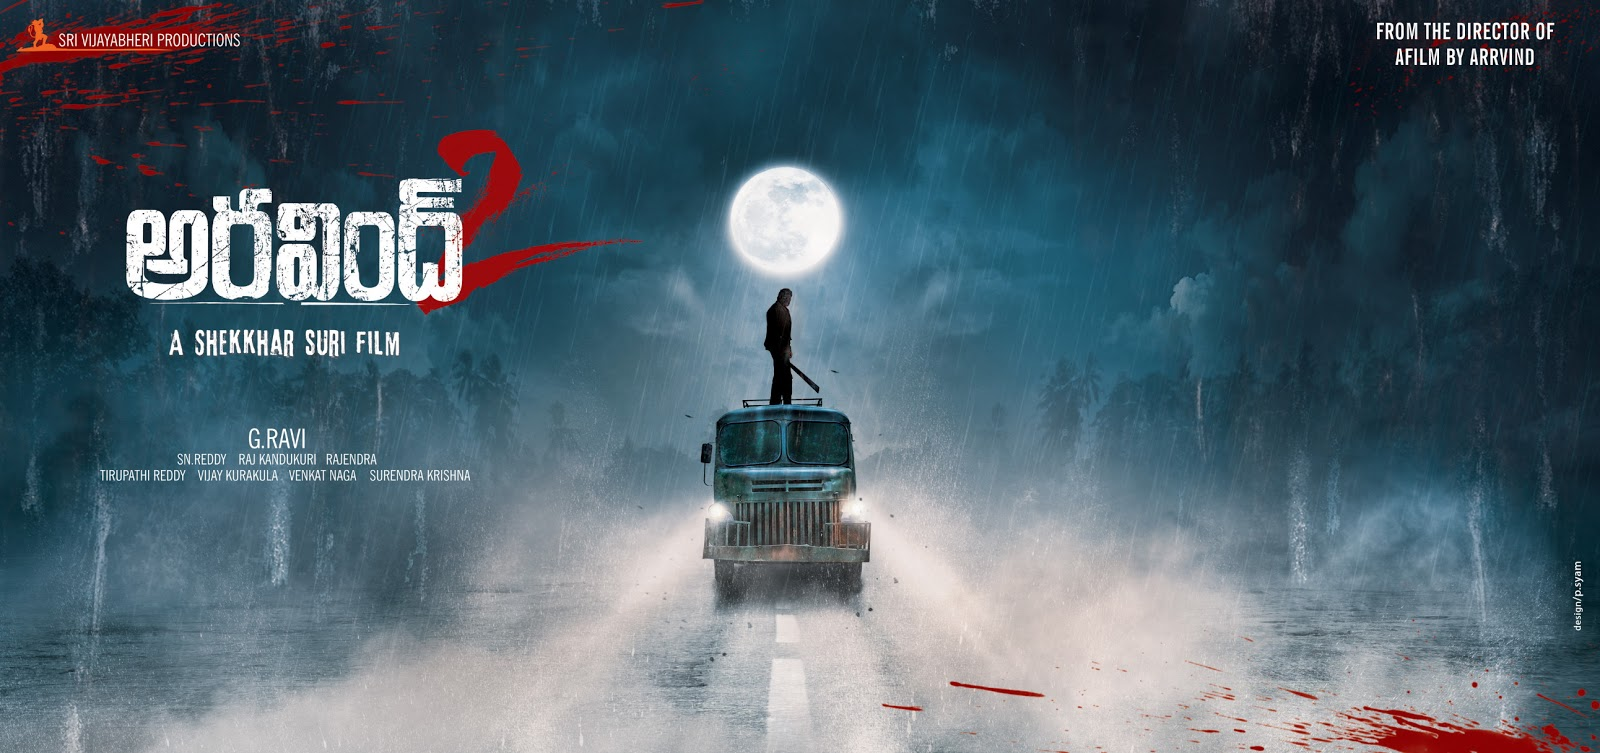 Aravind-2 Hq Wallpapers